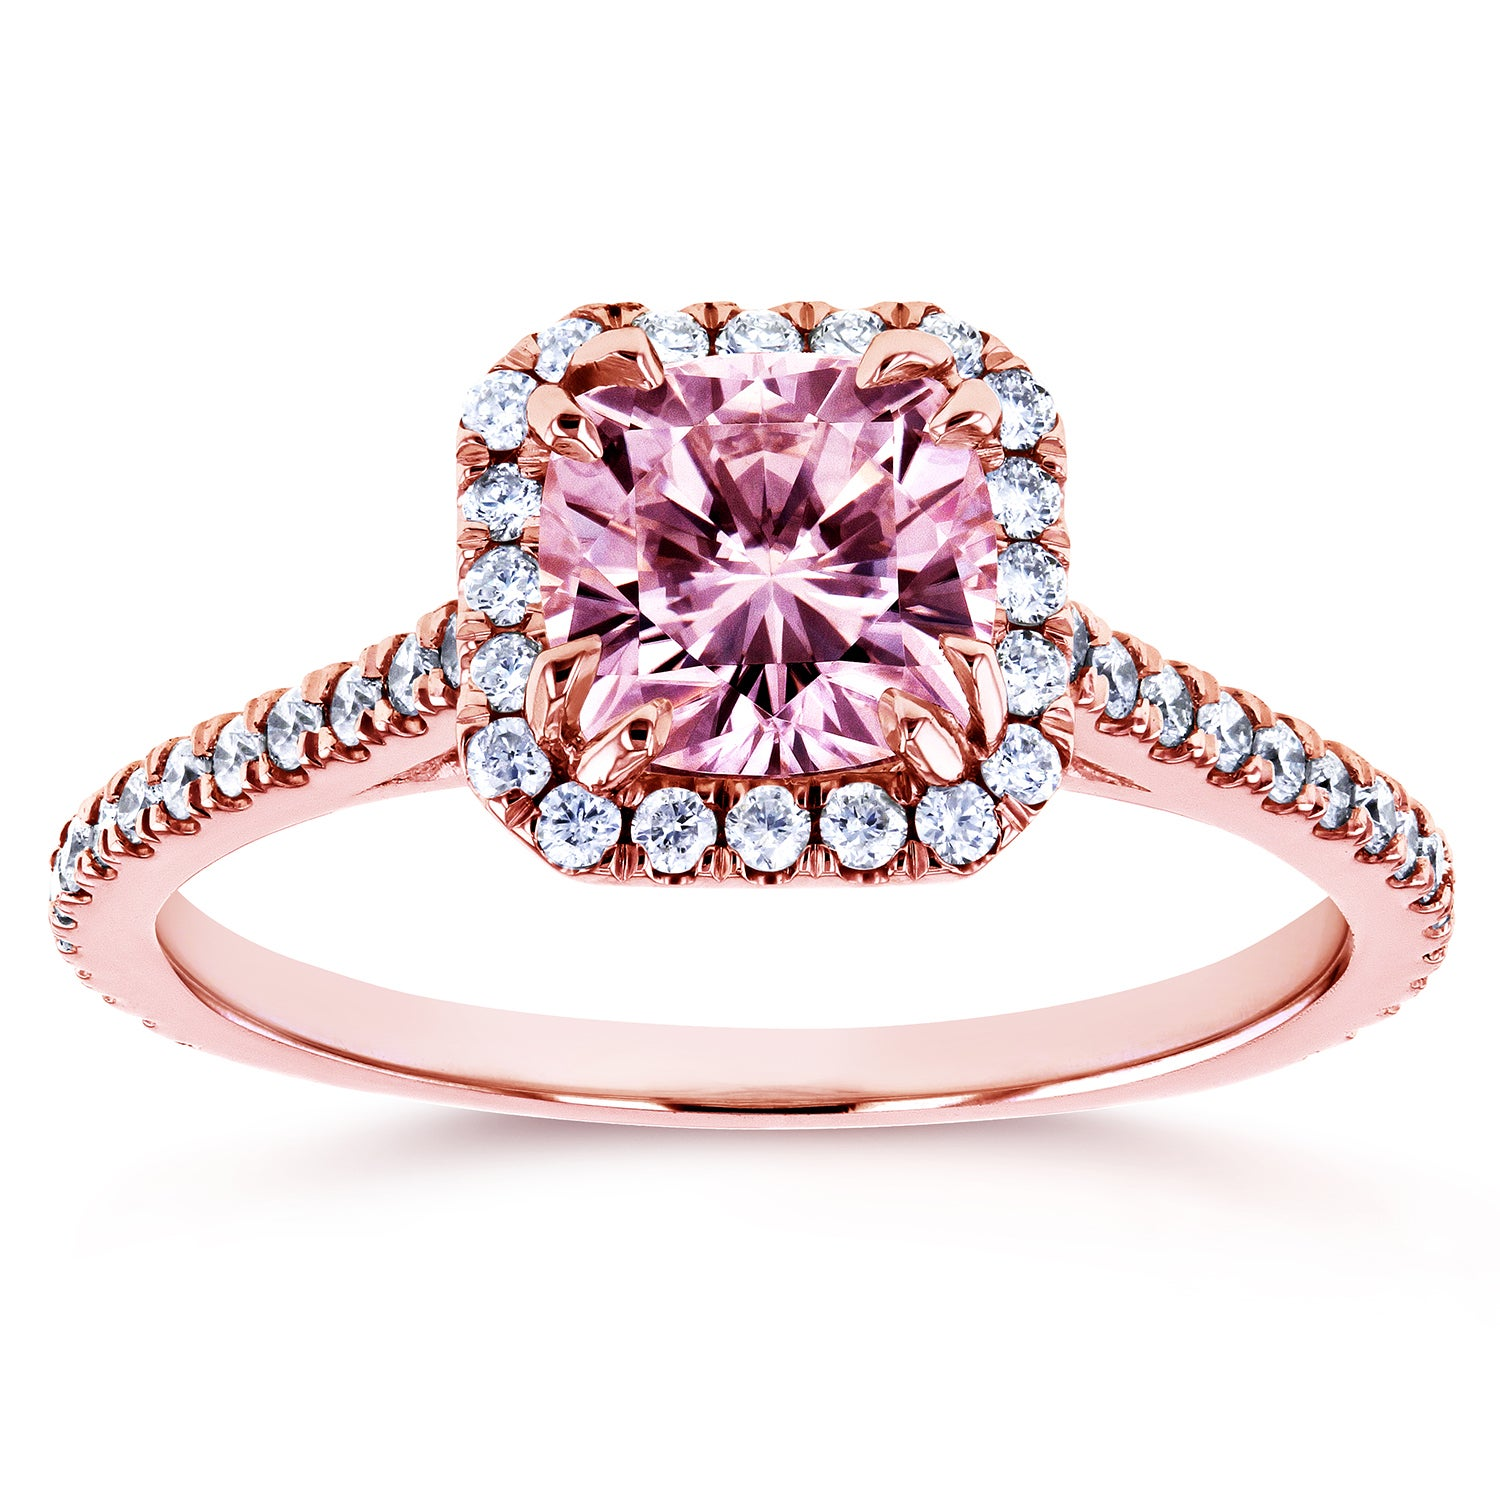 Buy Rose, Moissanite Engagement Rings Online at Overstock.com | Our ...